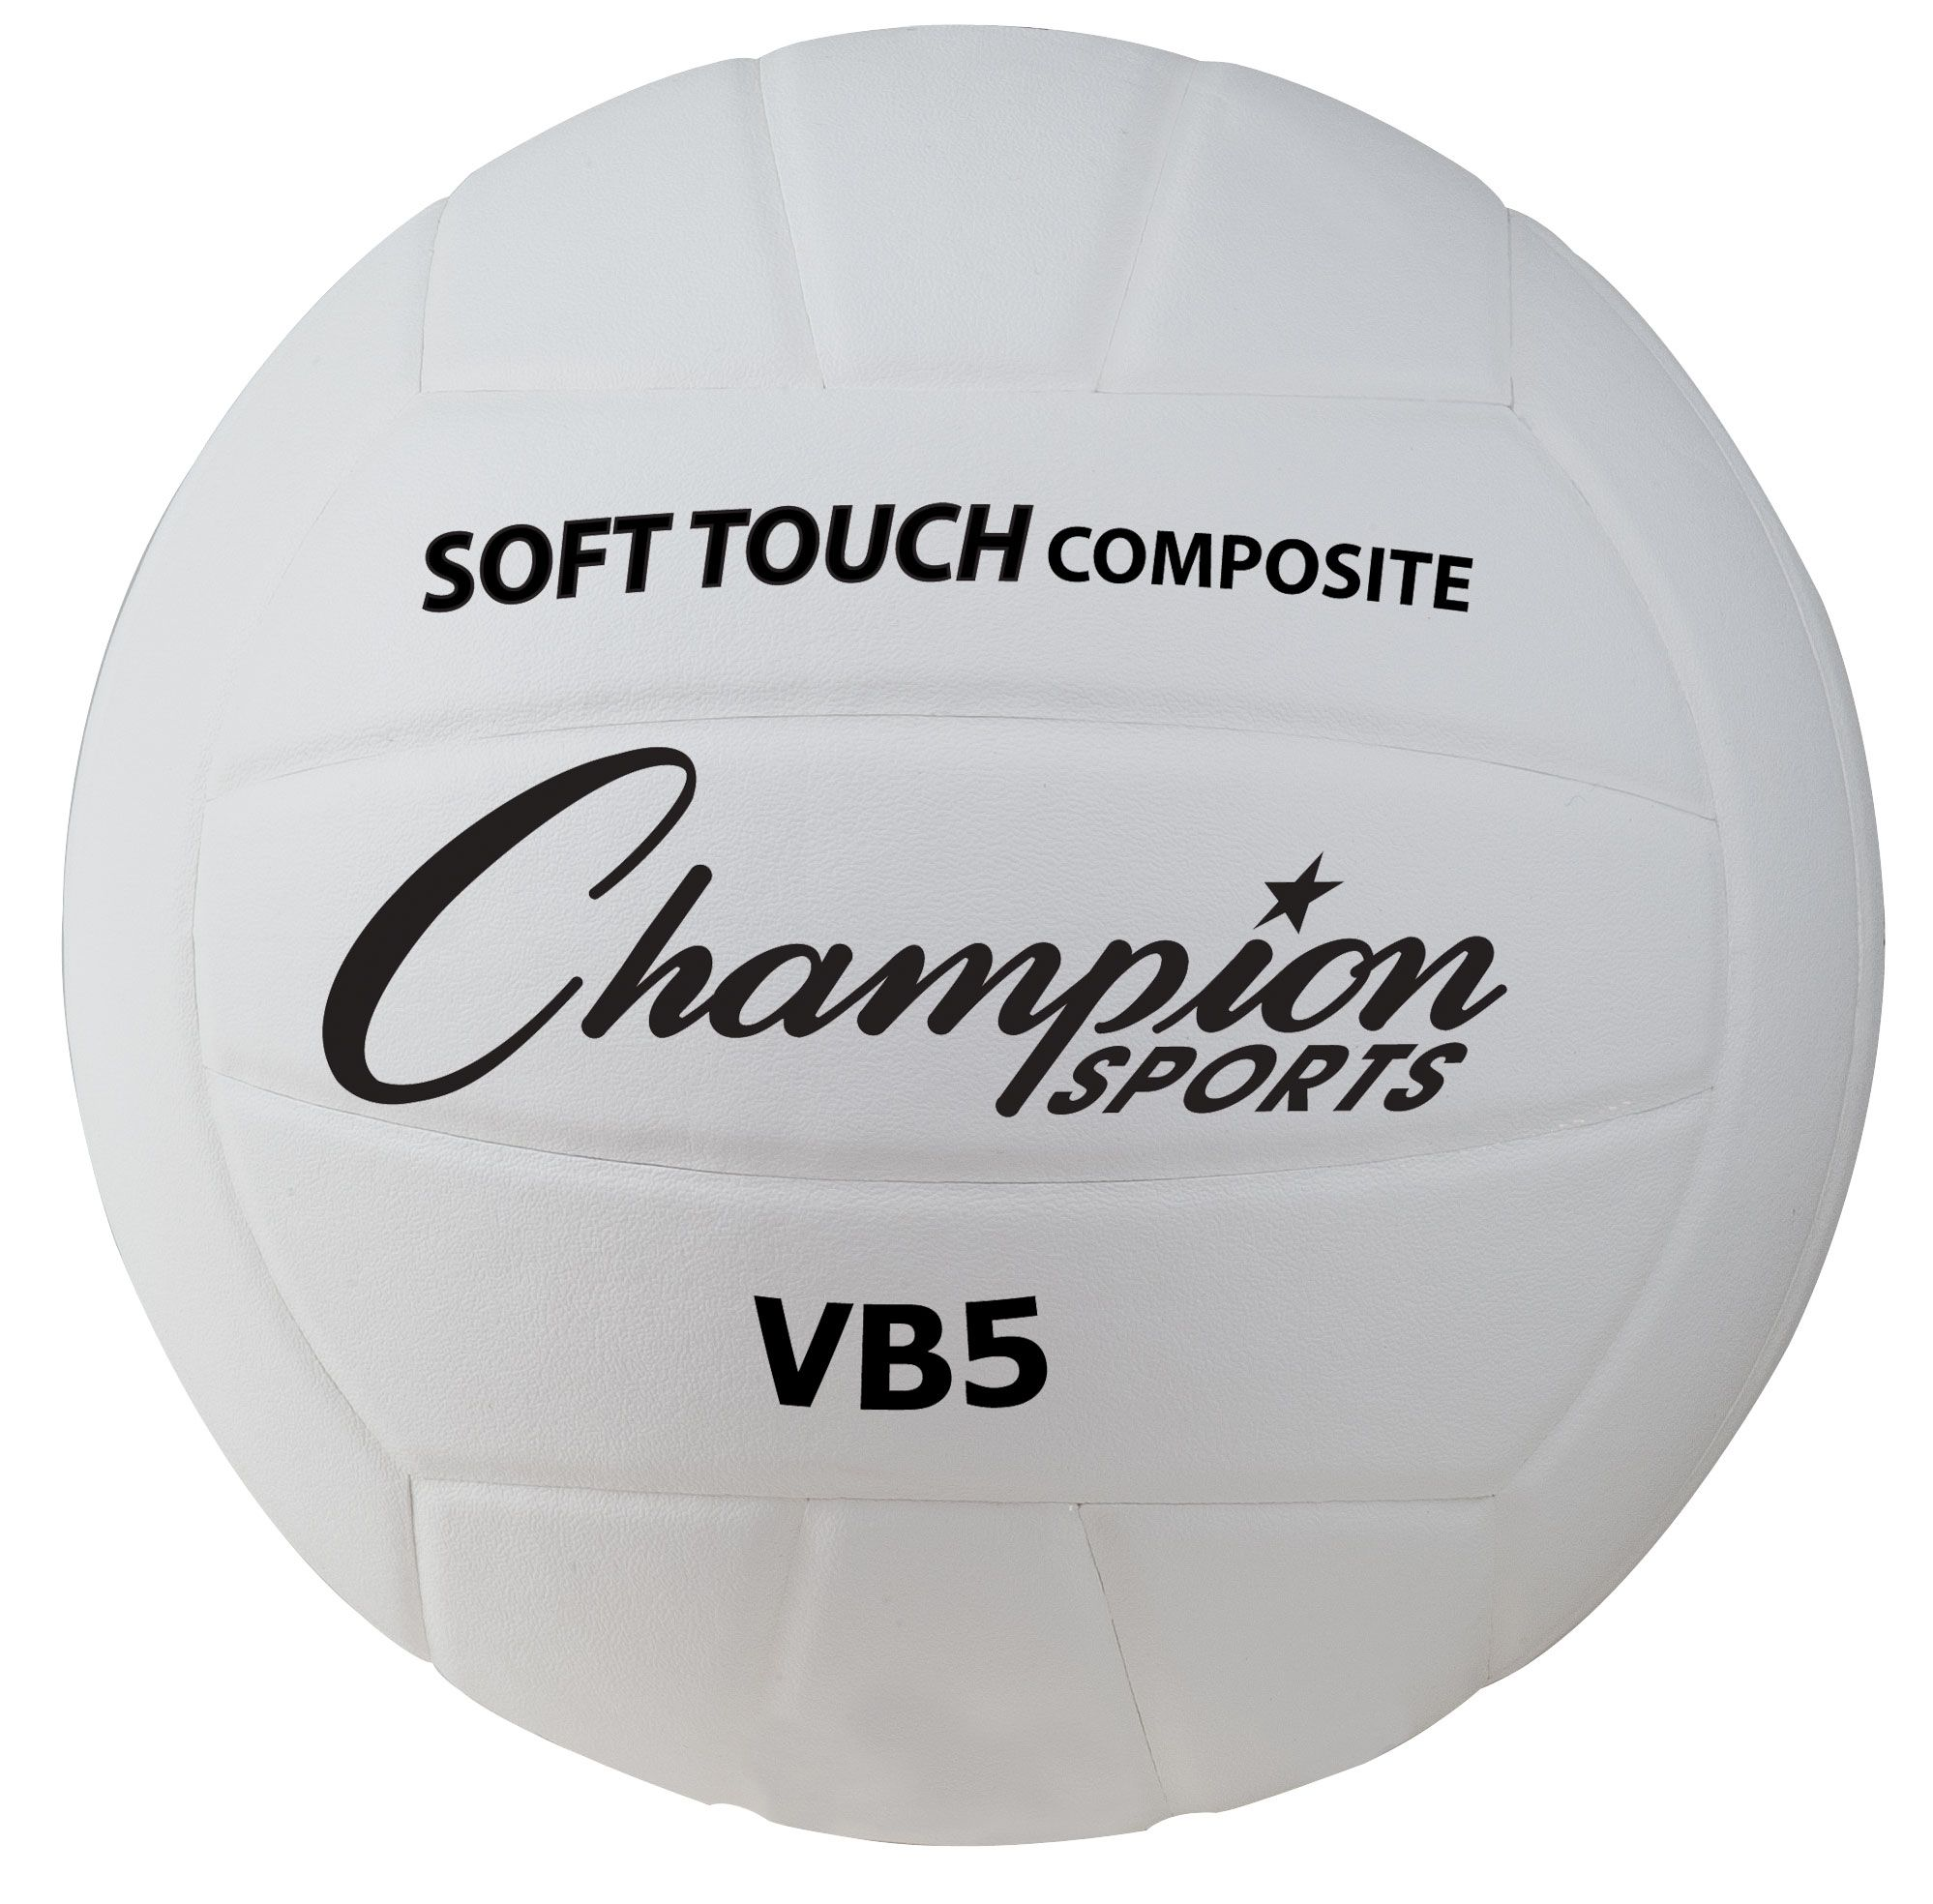 Physical Education Volleyball Volleyball Balls Deluxe Physical Education Physics Volleyball Nets